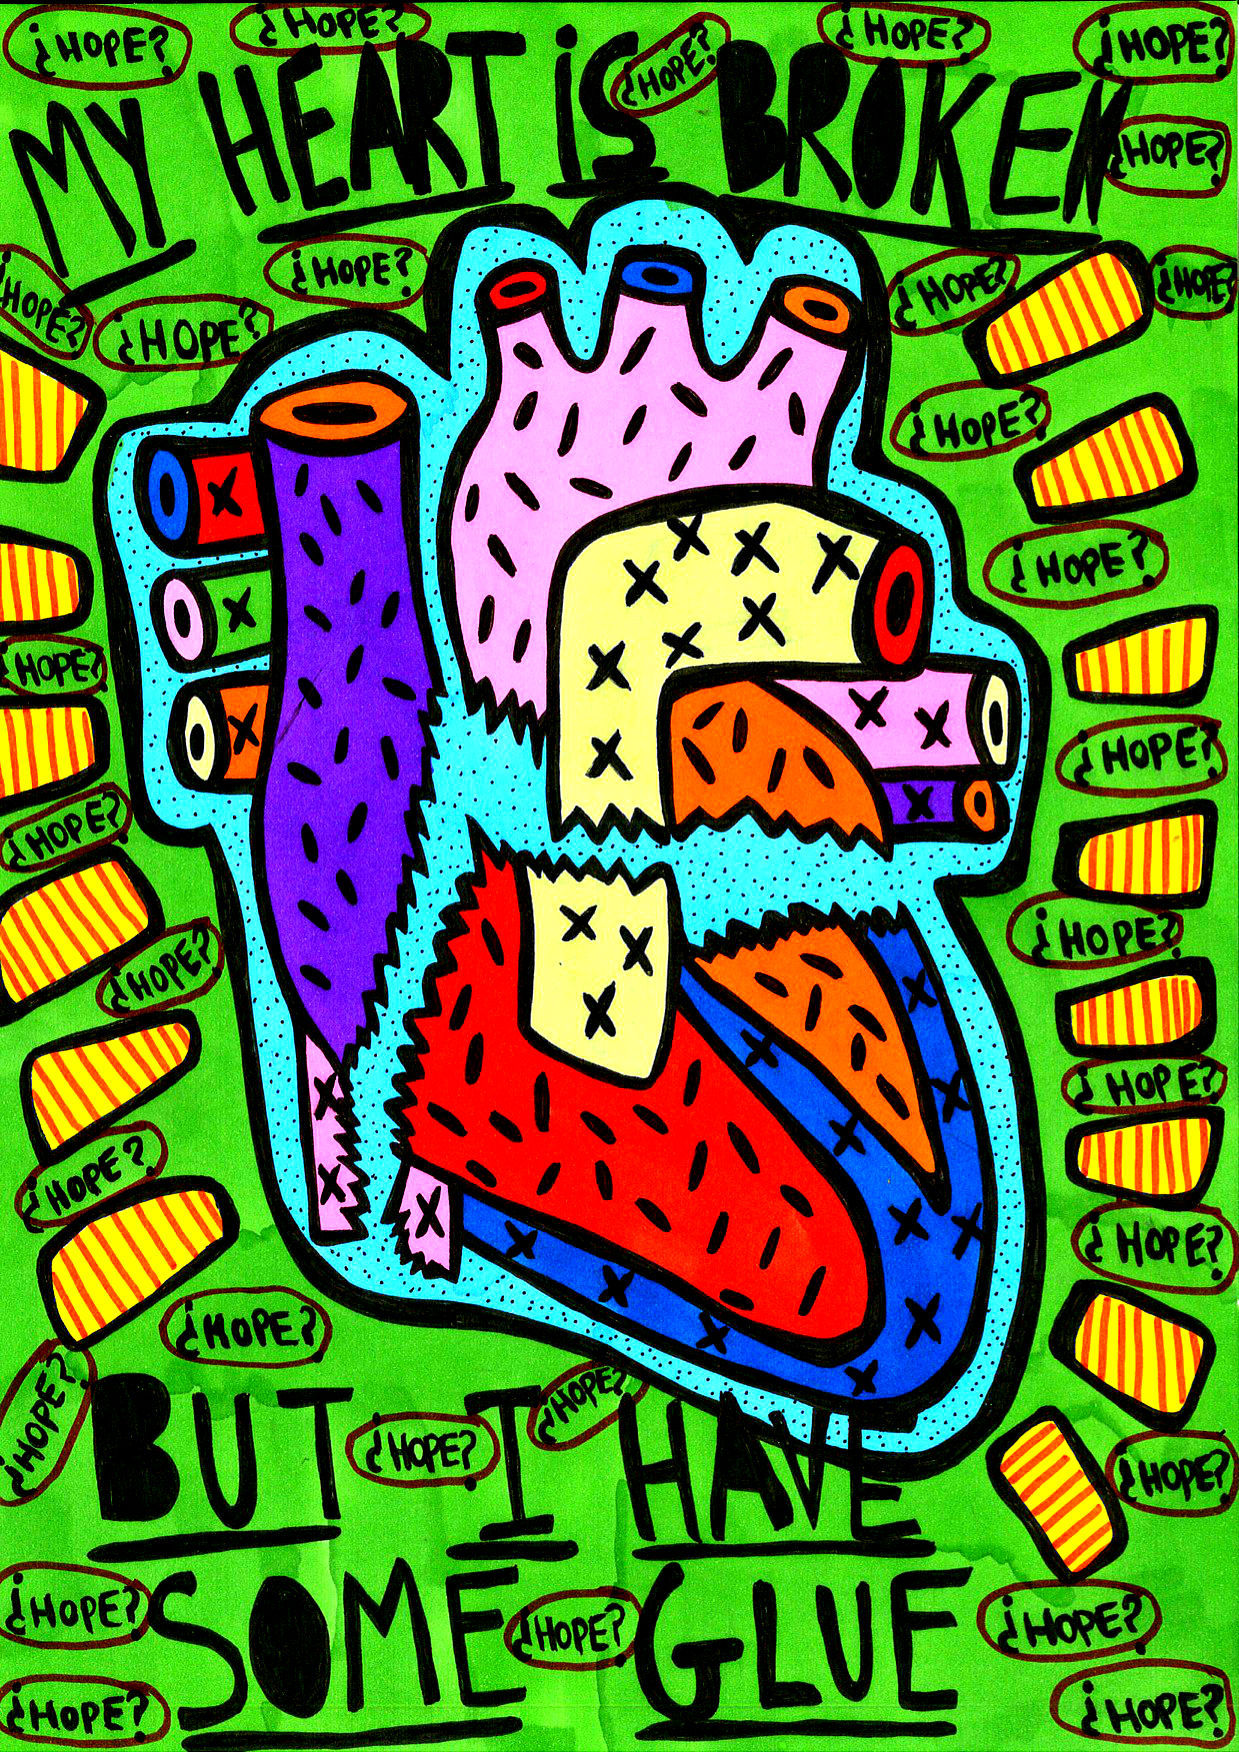 """""""My heart is broke but I have some glue"""" , 2013   Marker on paper, 21 x 29.7 cm Private Collection"""